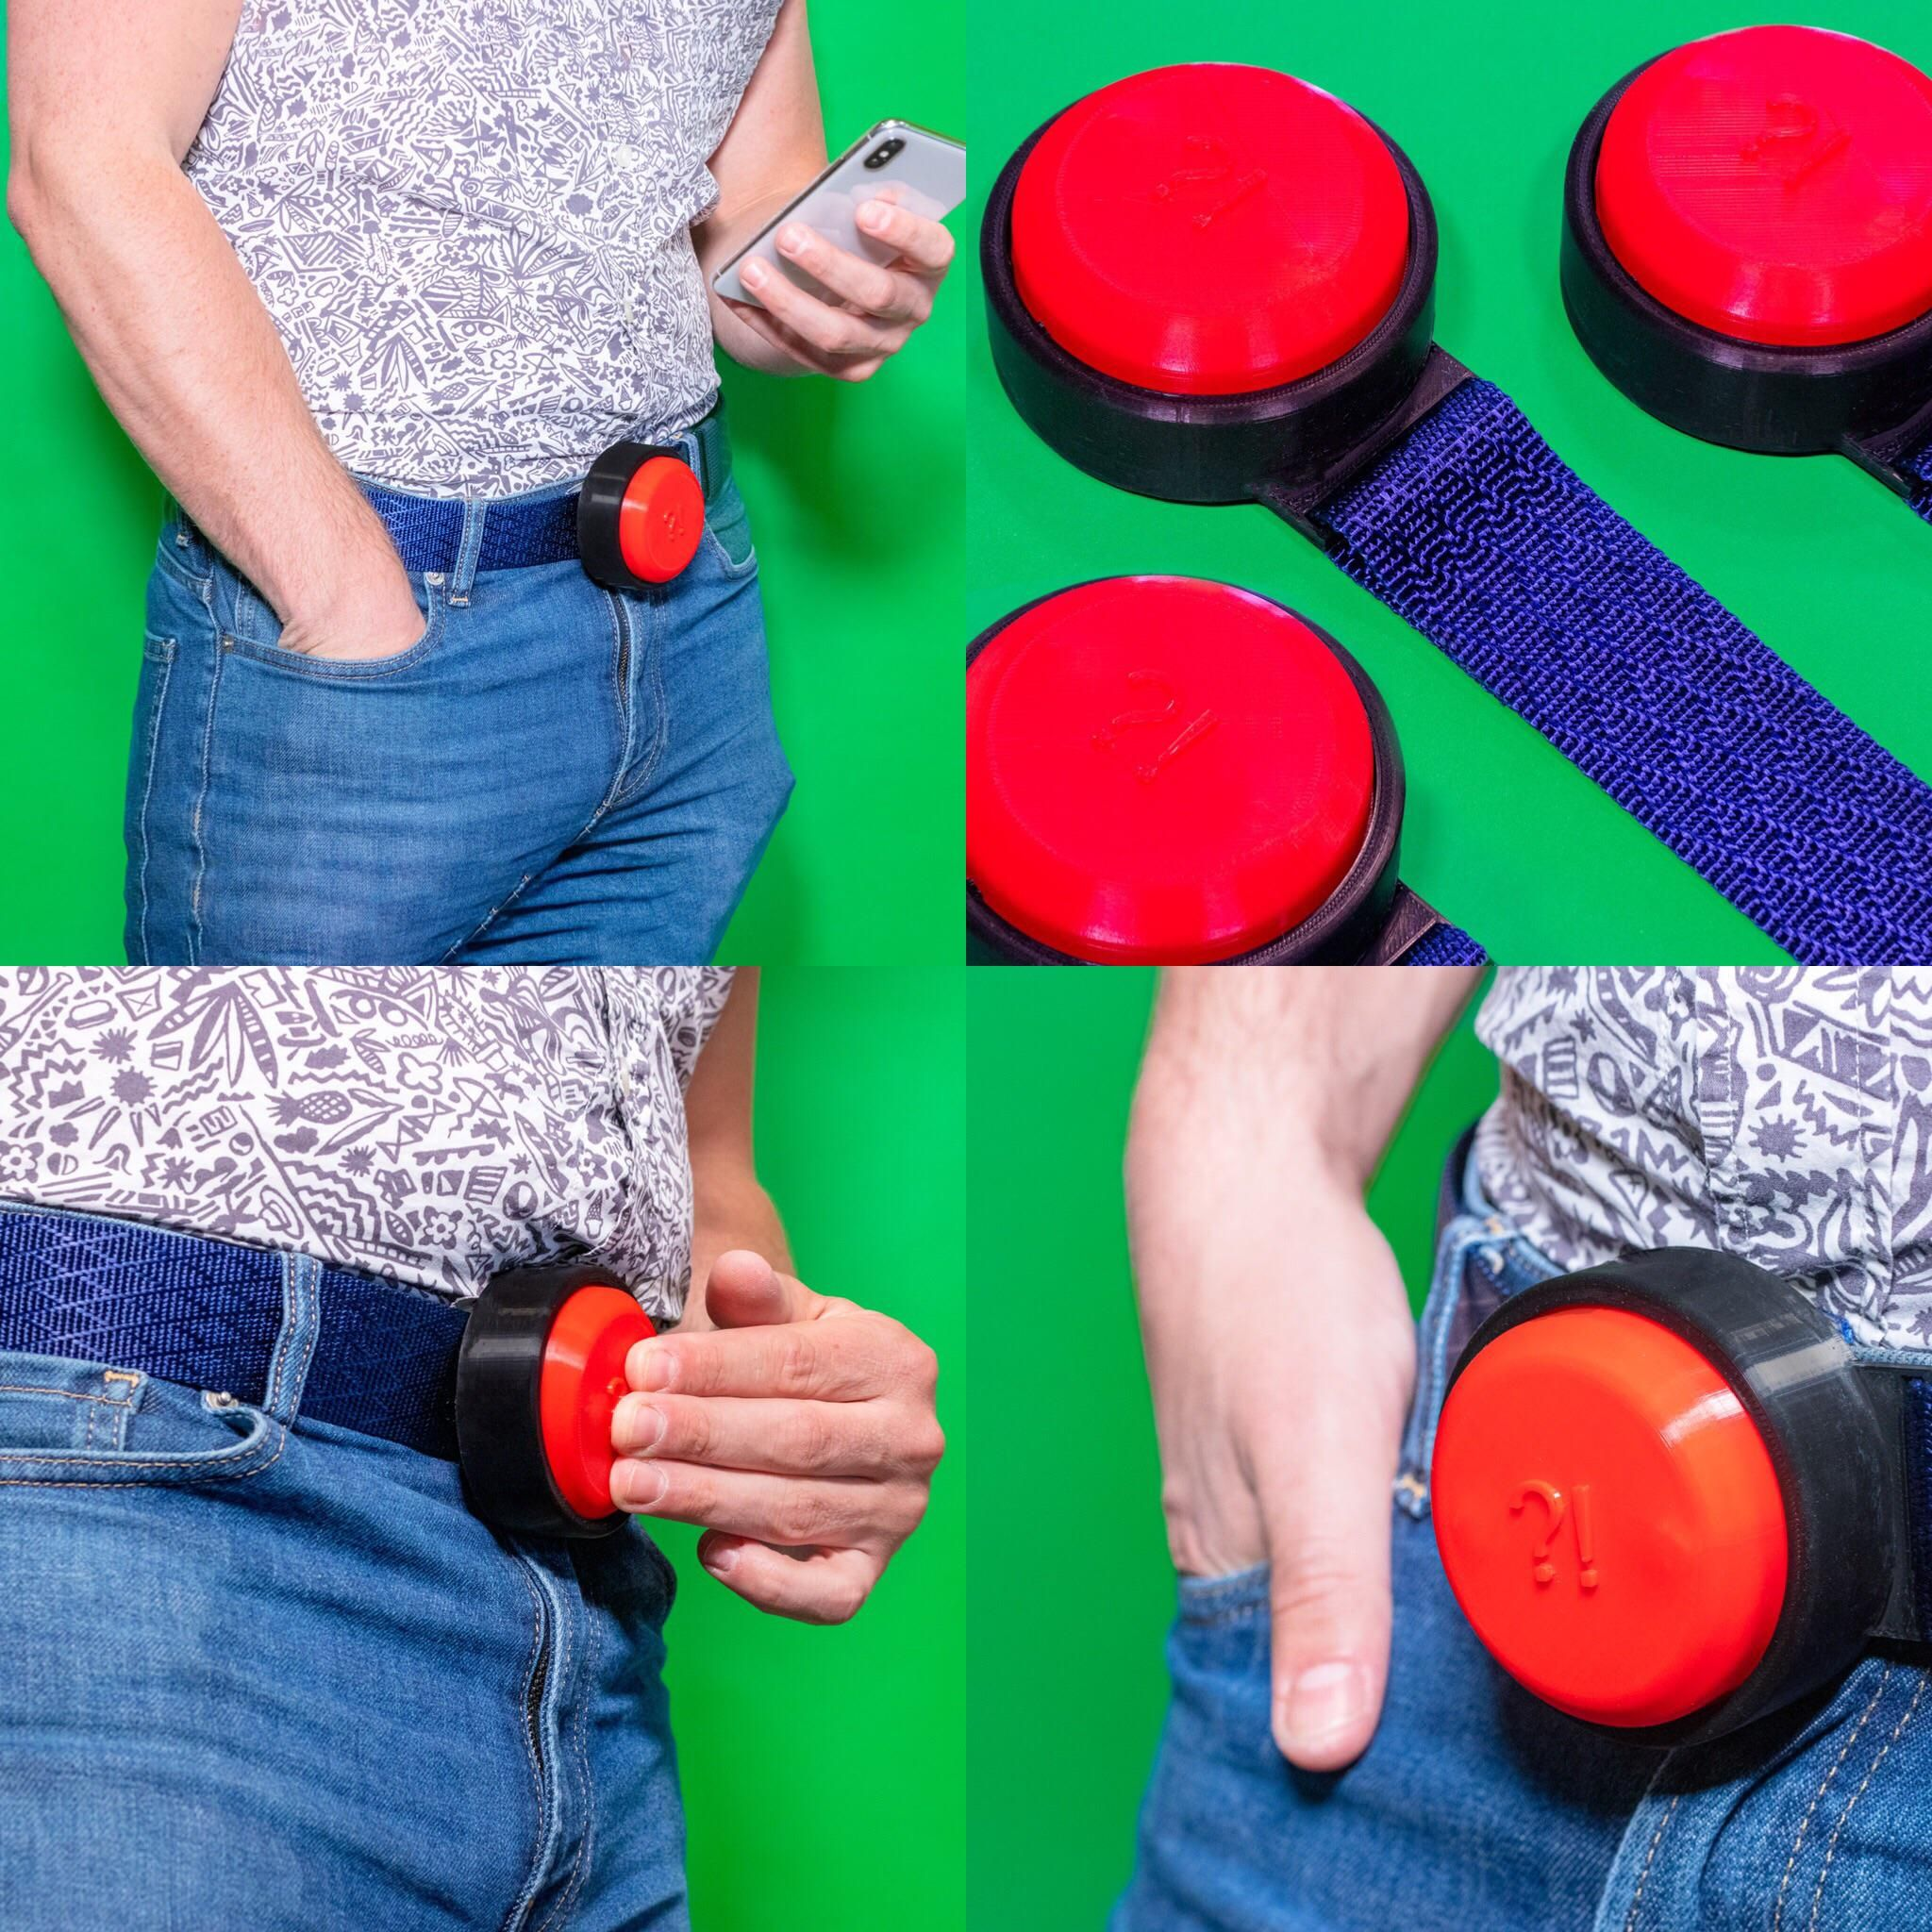 My newest fake invention is the FrustrationButton, you own belt buckle horn for slow walkers.